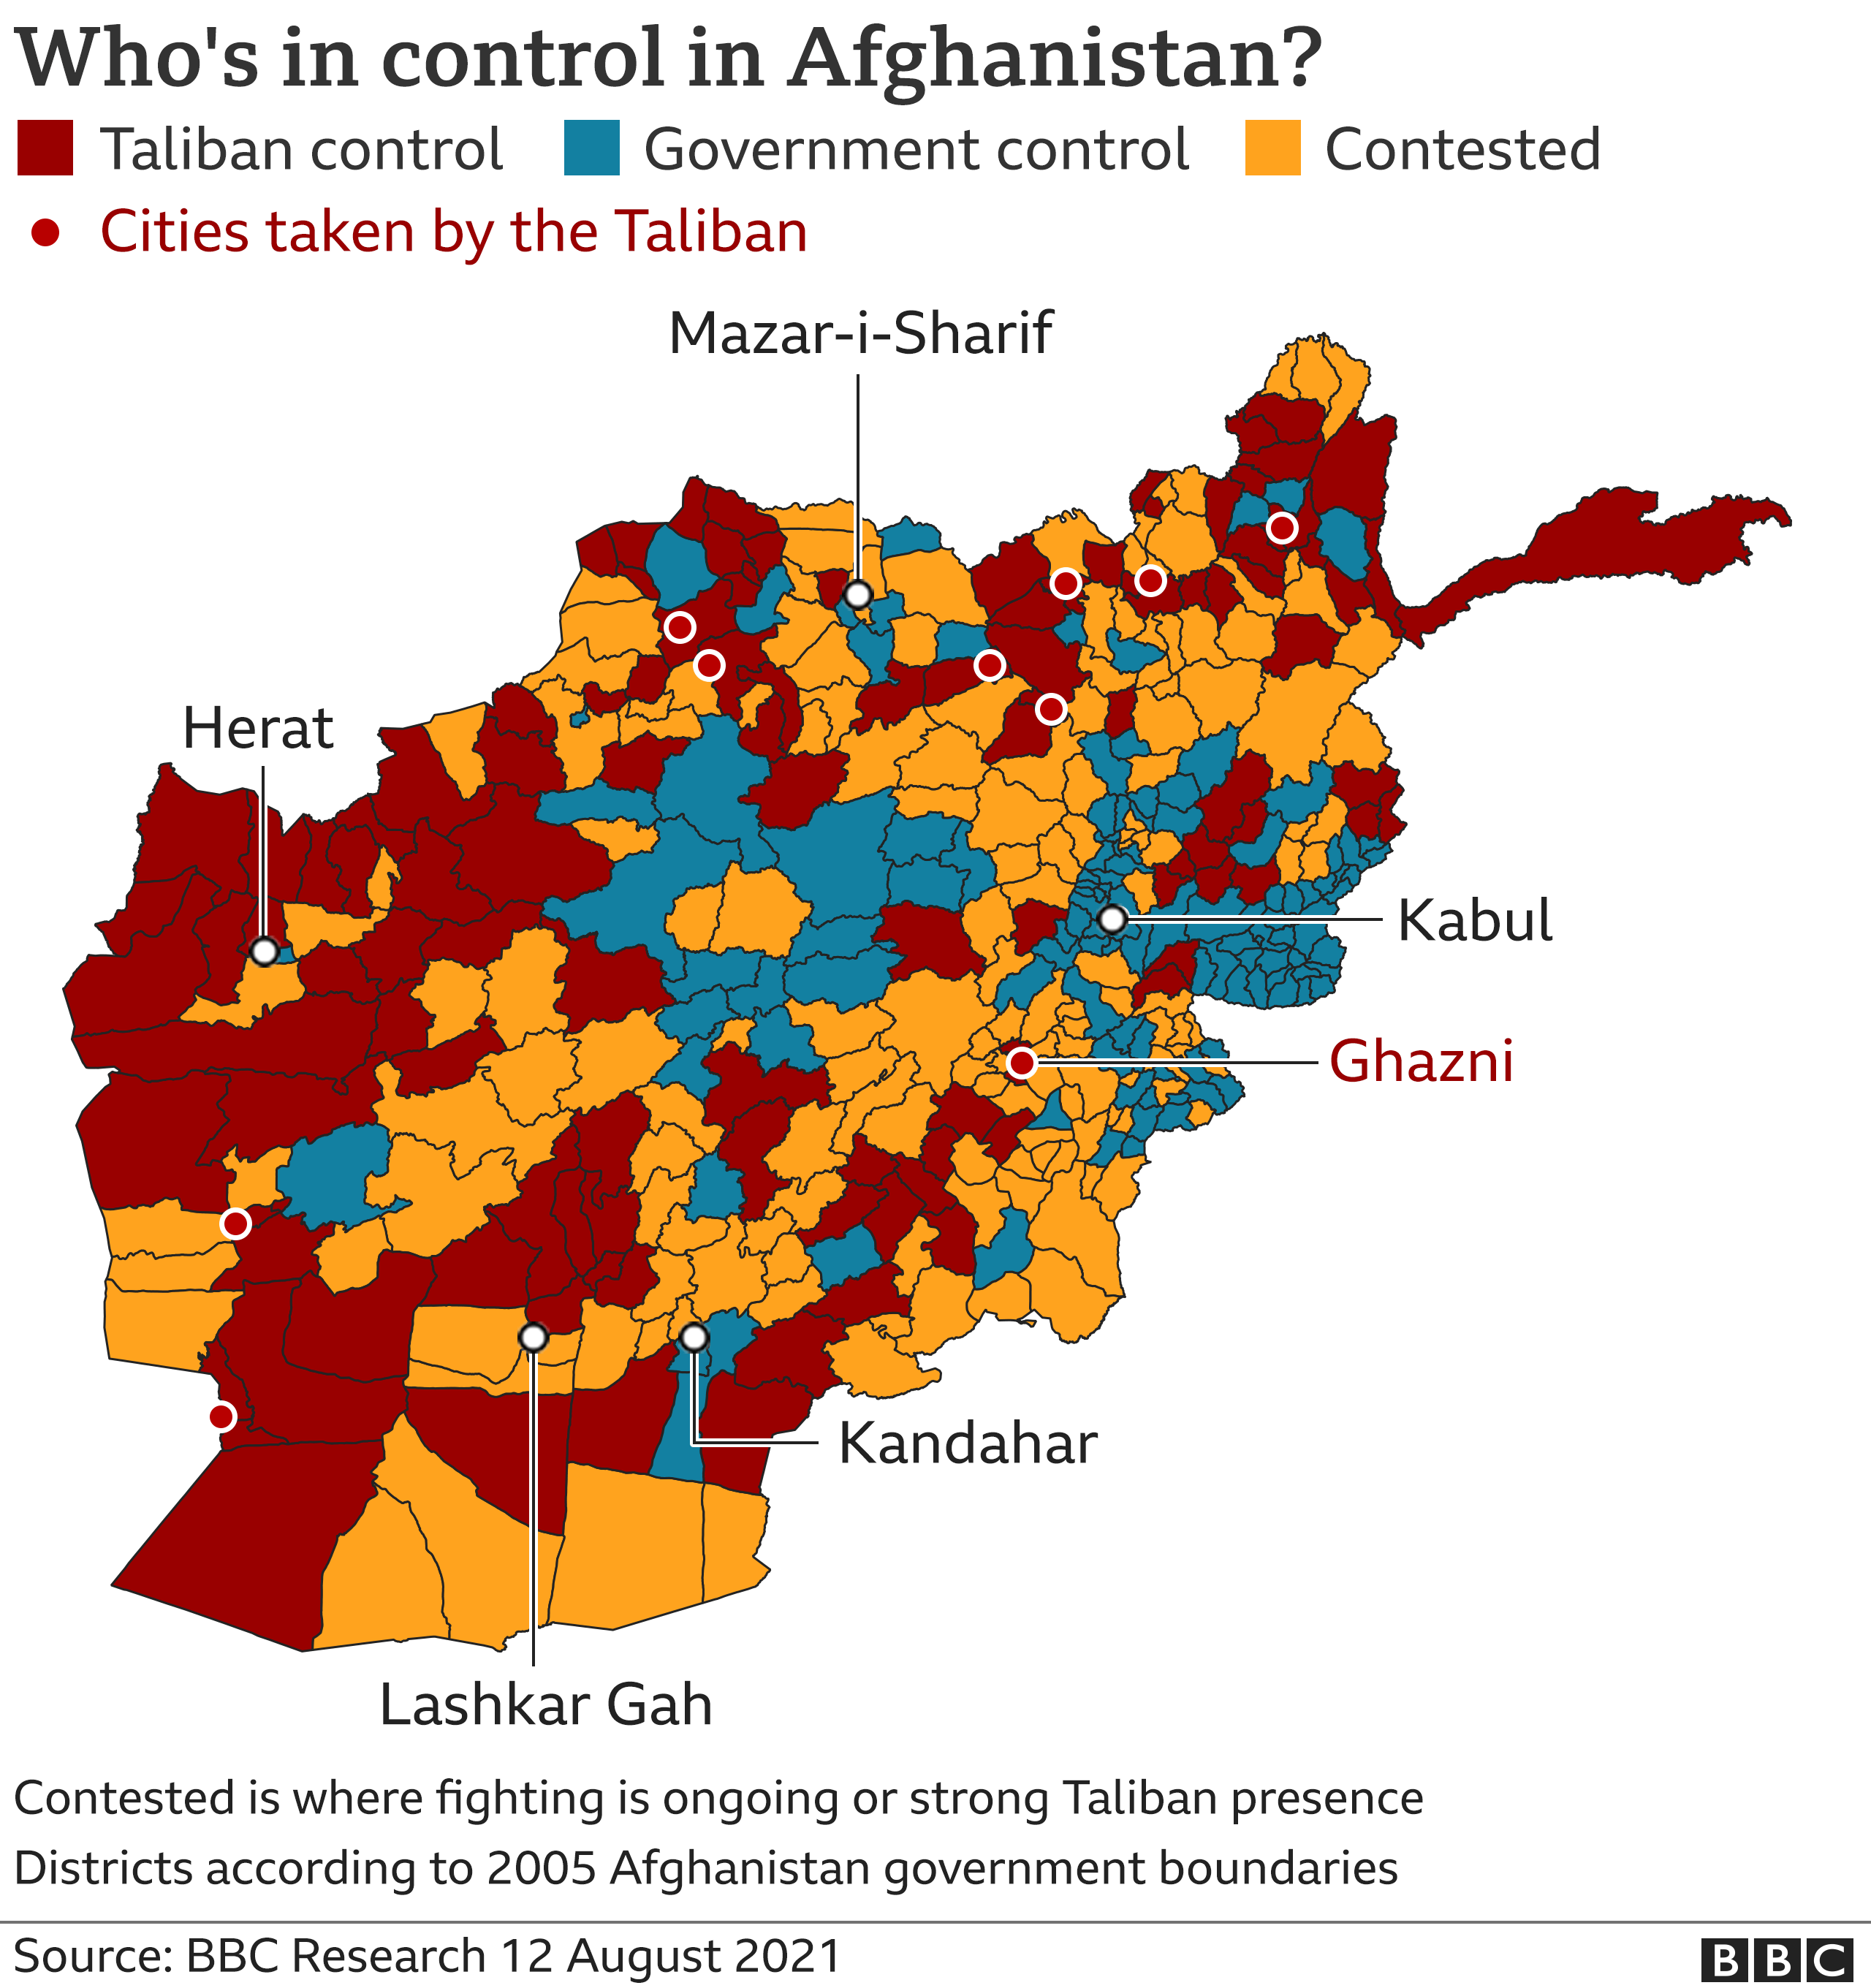 Map showing who is control of districts in Afghanistan